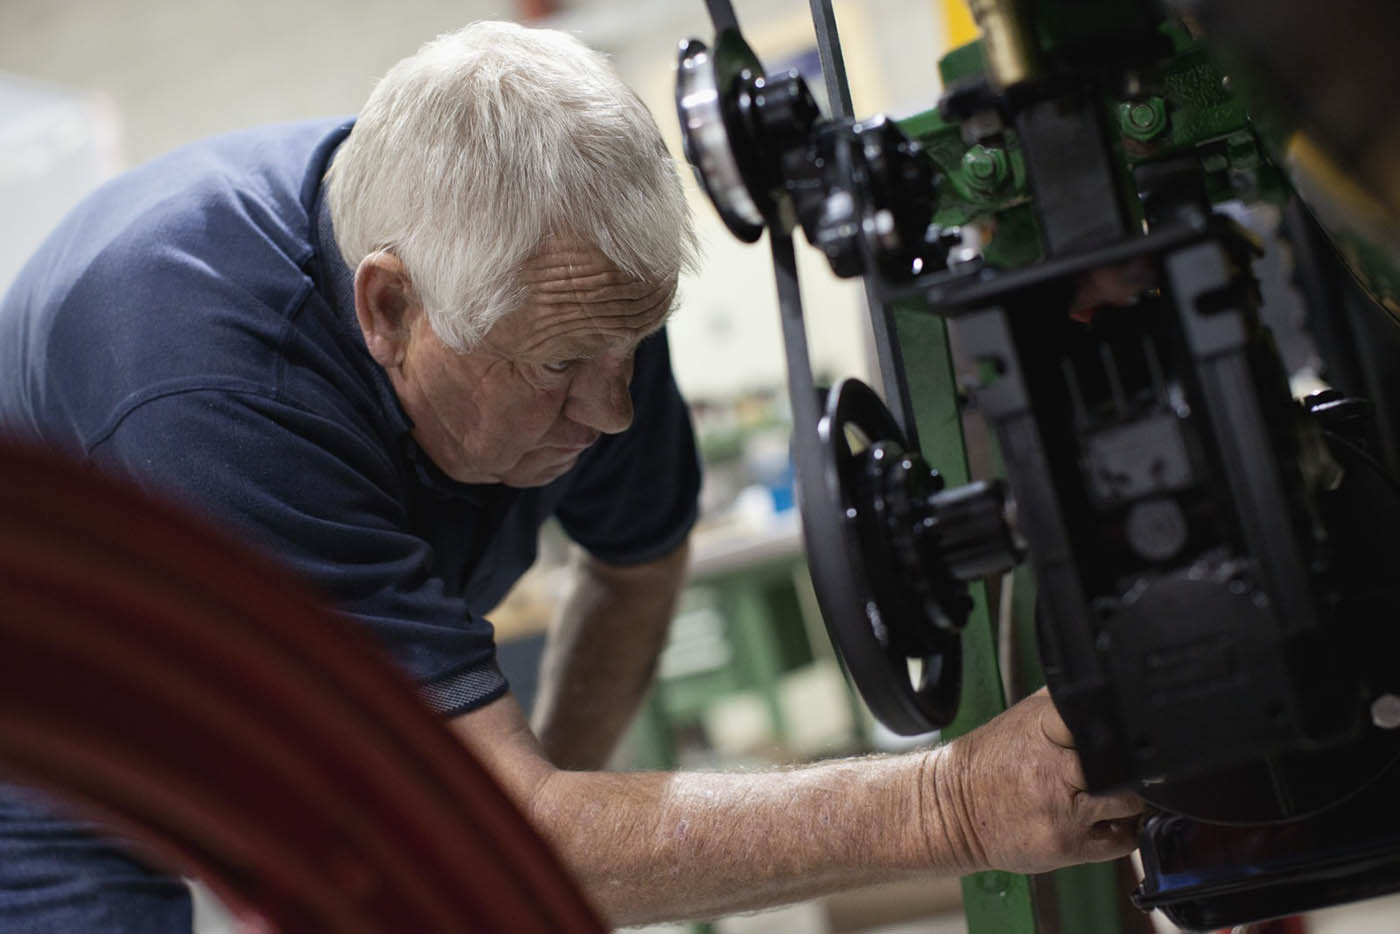 A colour photograph of a man working on an engine. - click to view larger image